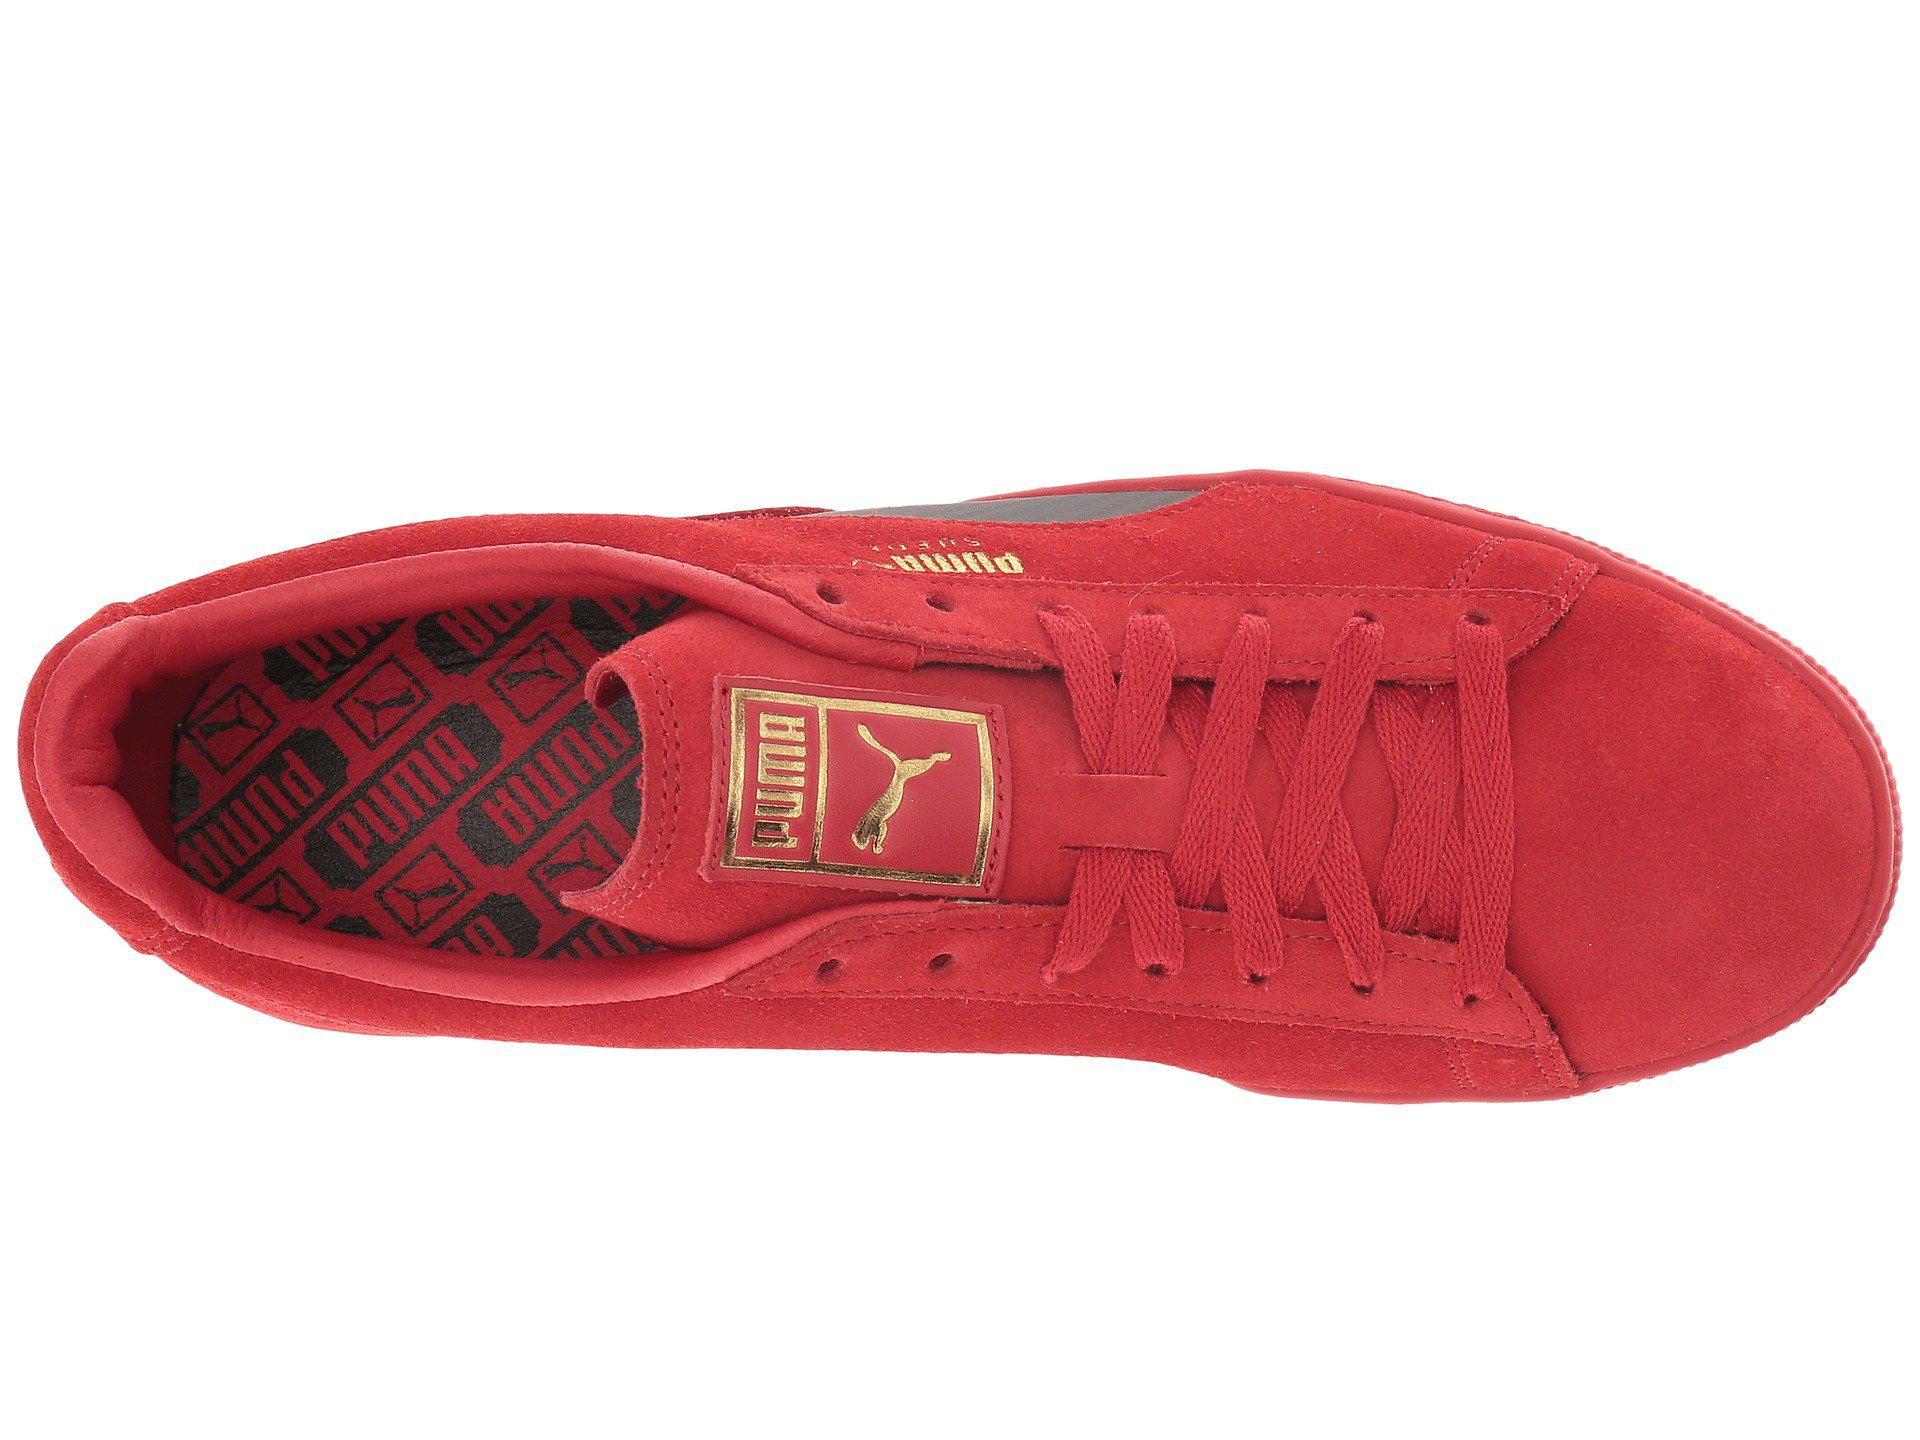 buy popular 30fa2 5b9d3 Red Sf Suede 50 (rosso Corsa/rosso Corsa/rosso Corsa) Men's Lace Up Casual  Shoes